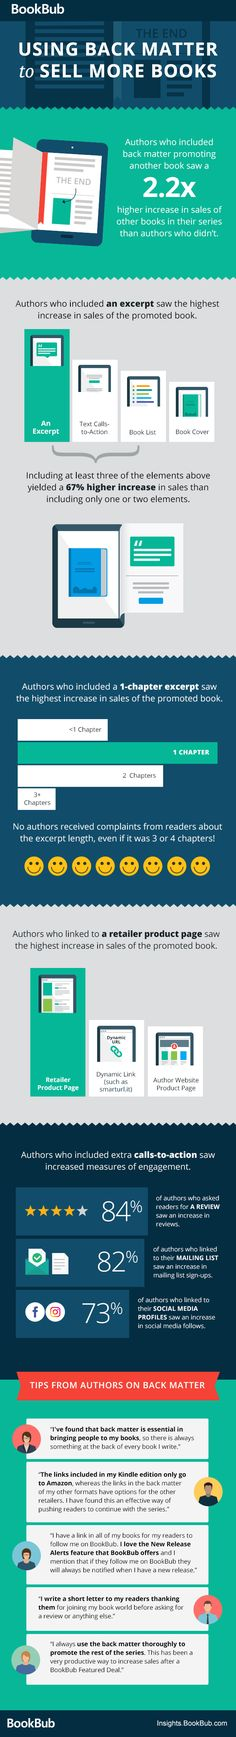 Using Back Matter to Sell More Books [Infographic]